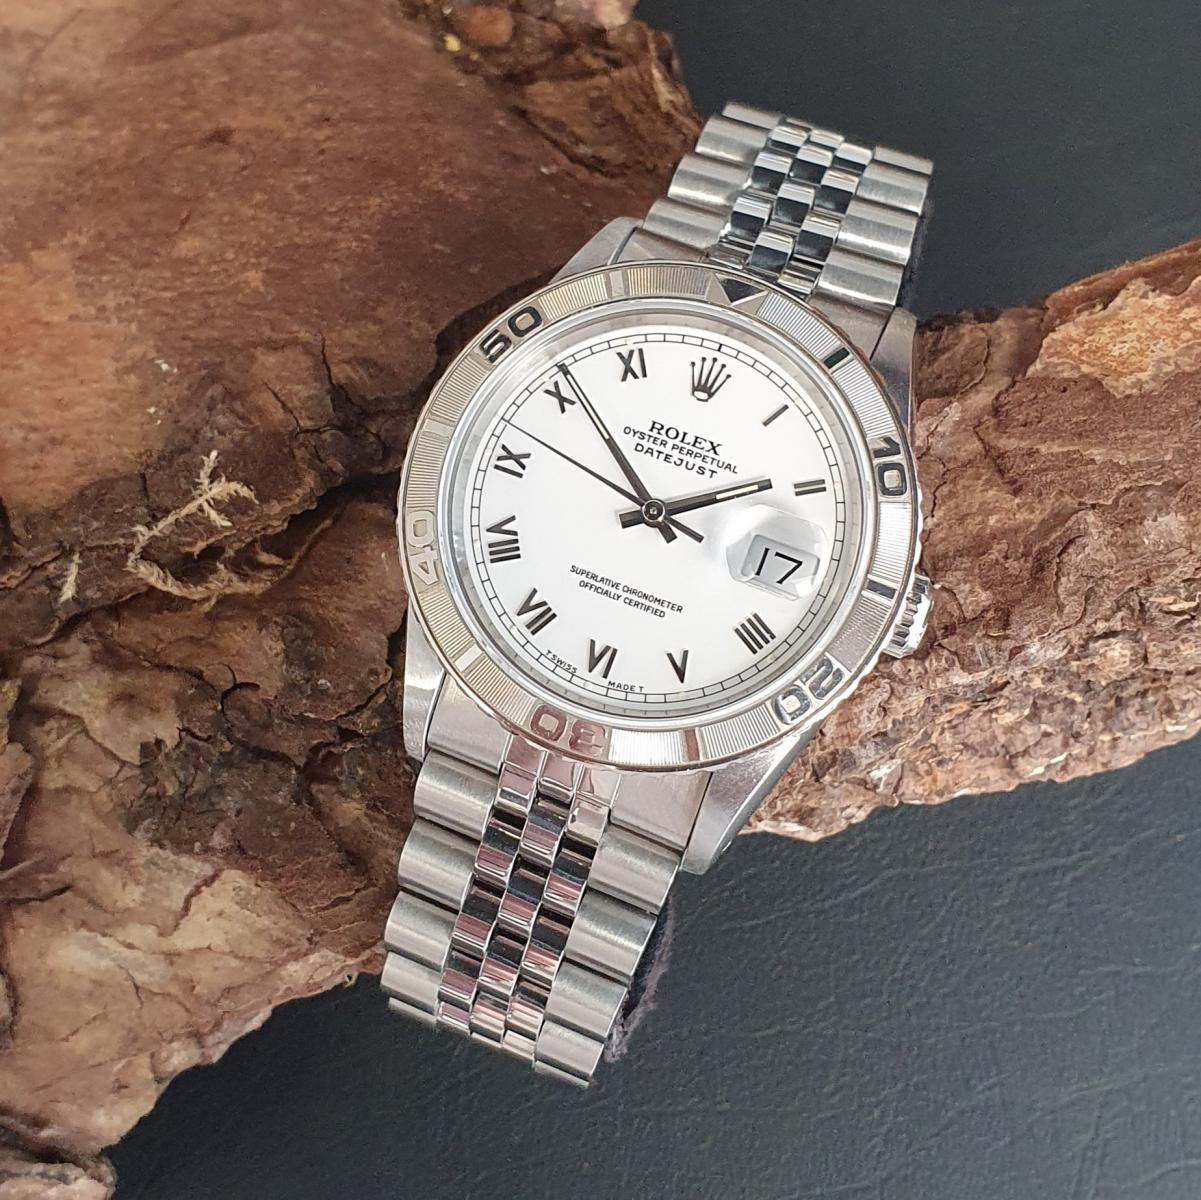 Rolex Datejust 36mm Turn-O-Graph Ref. 16264